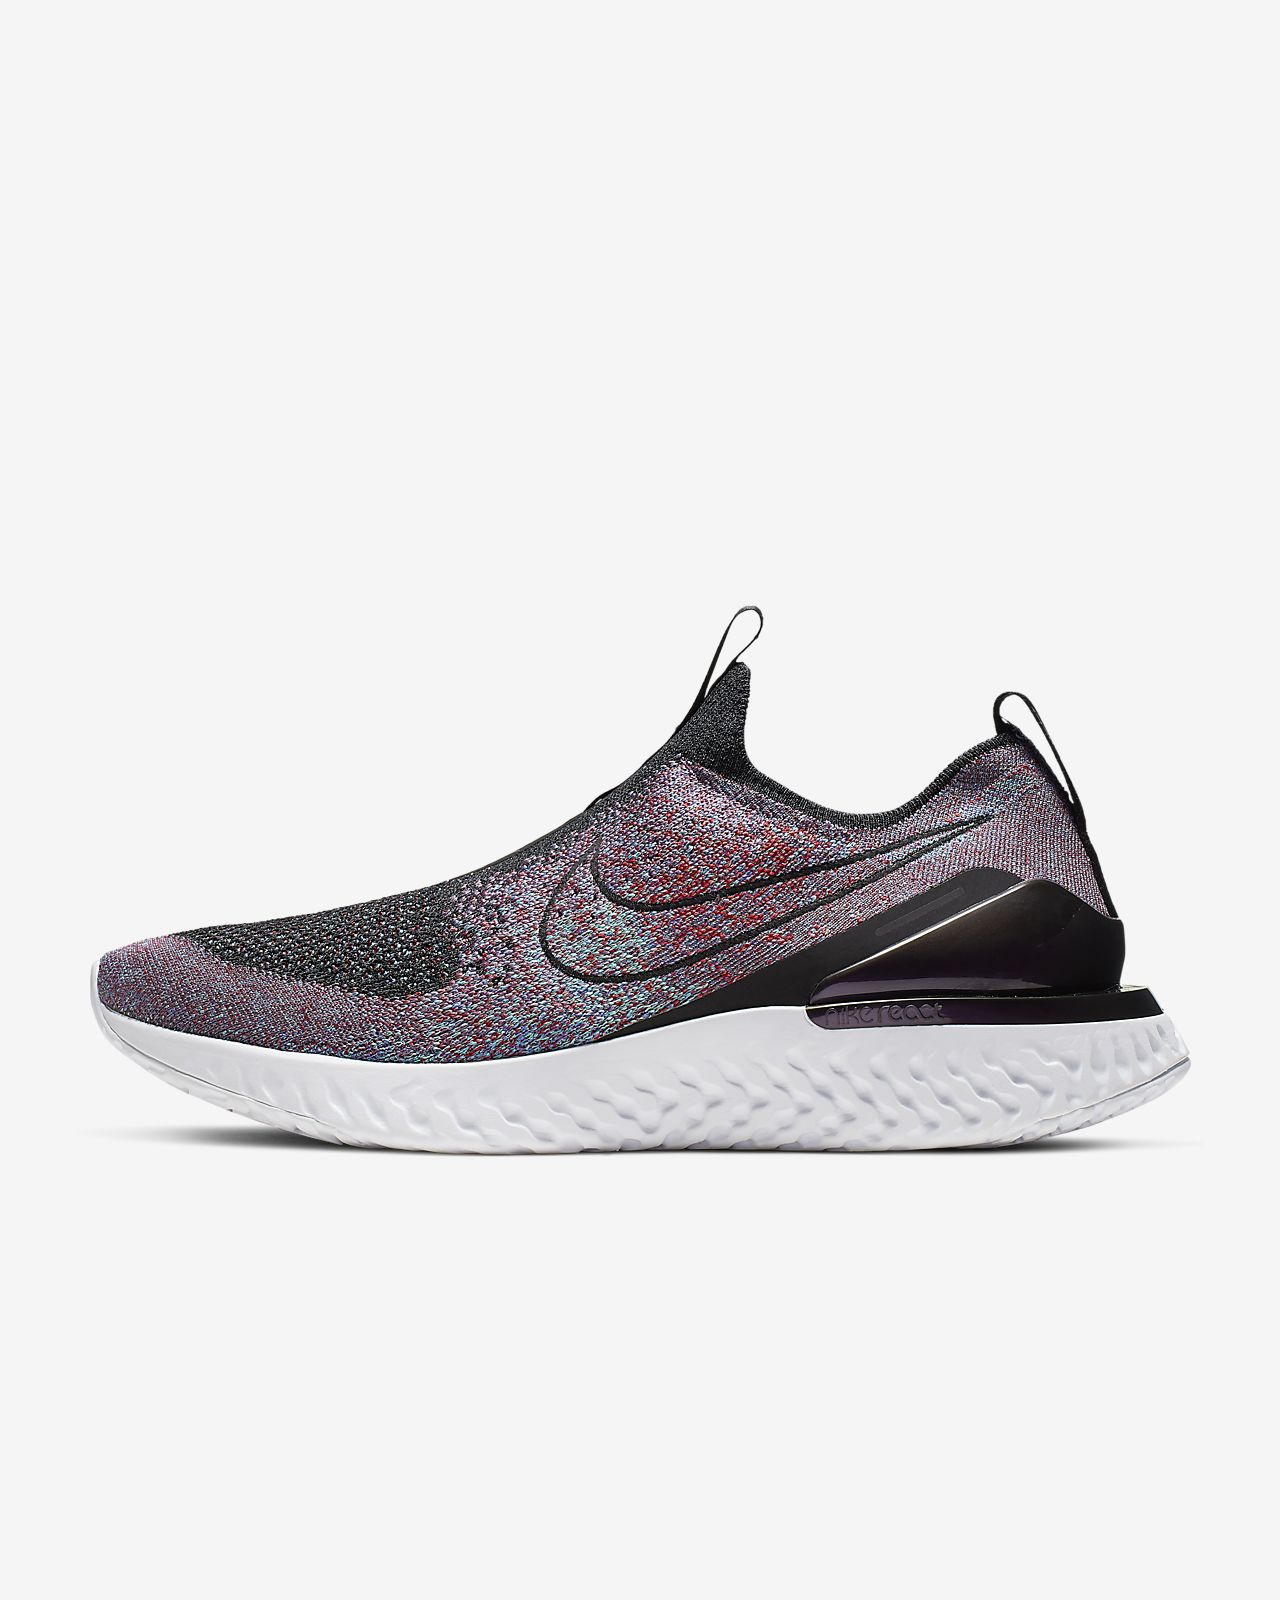 a76933d90b597 Nike Epic Phantom React Flyknit Men s Running Shoe. Nike.com SG